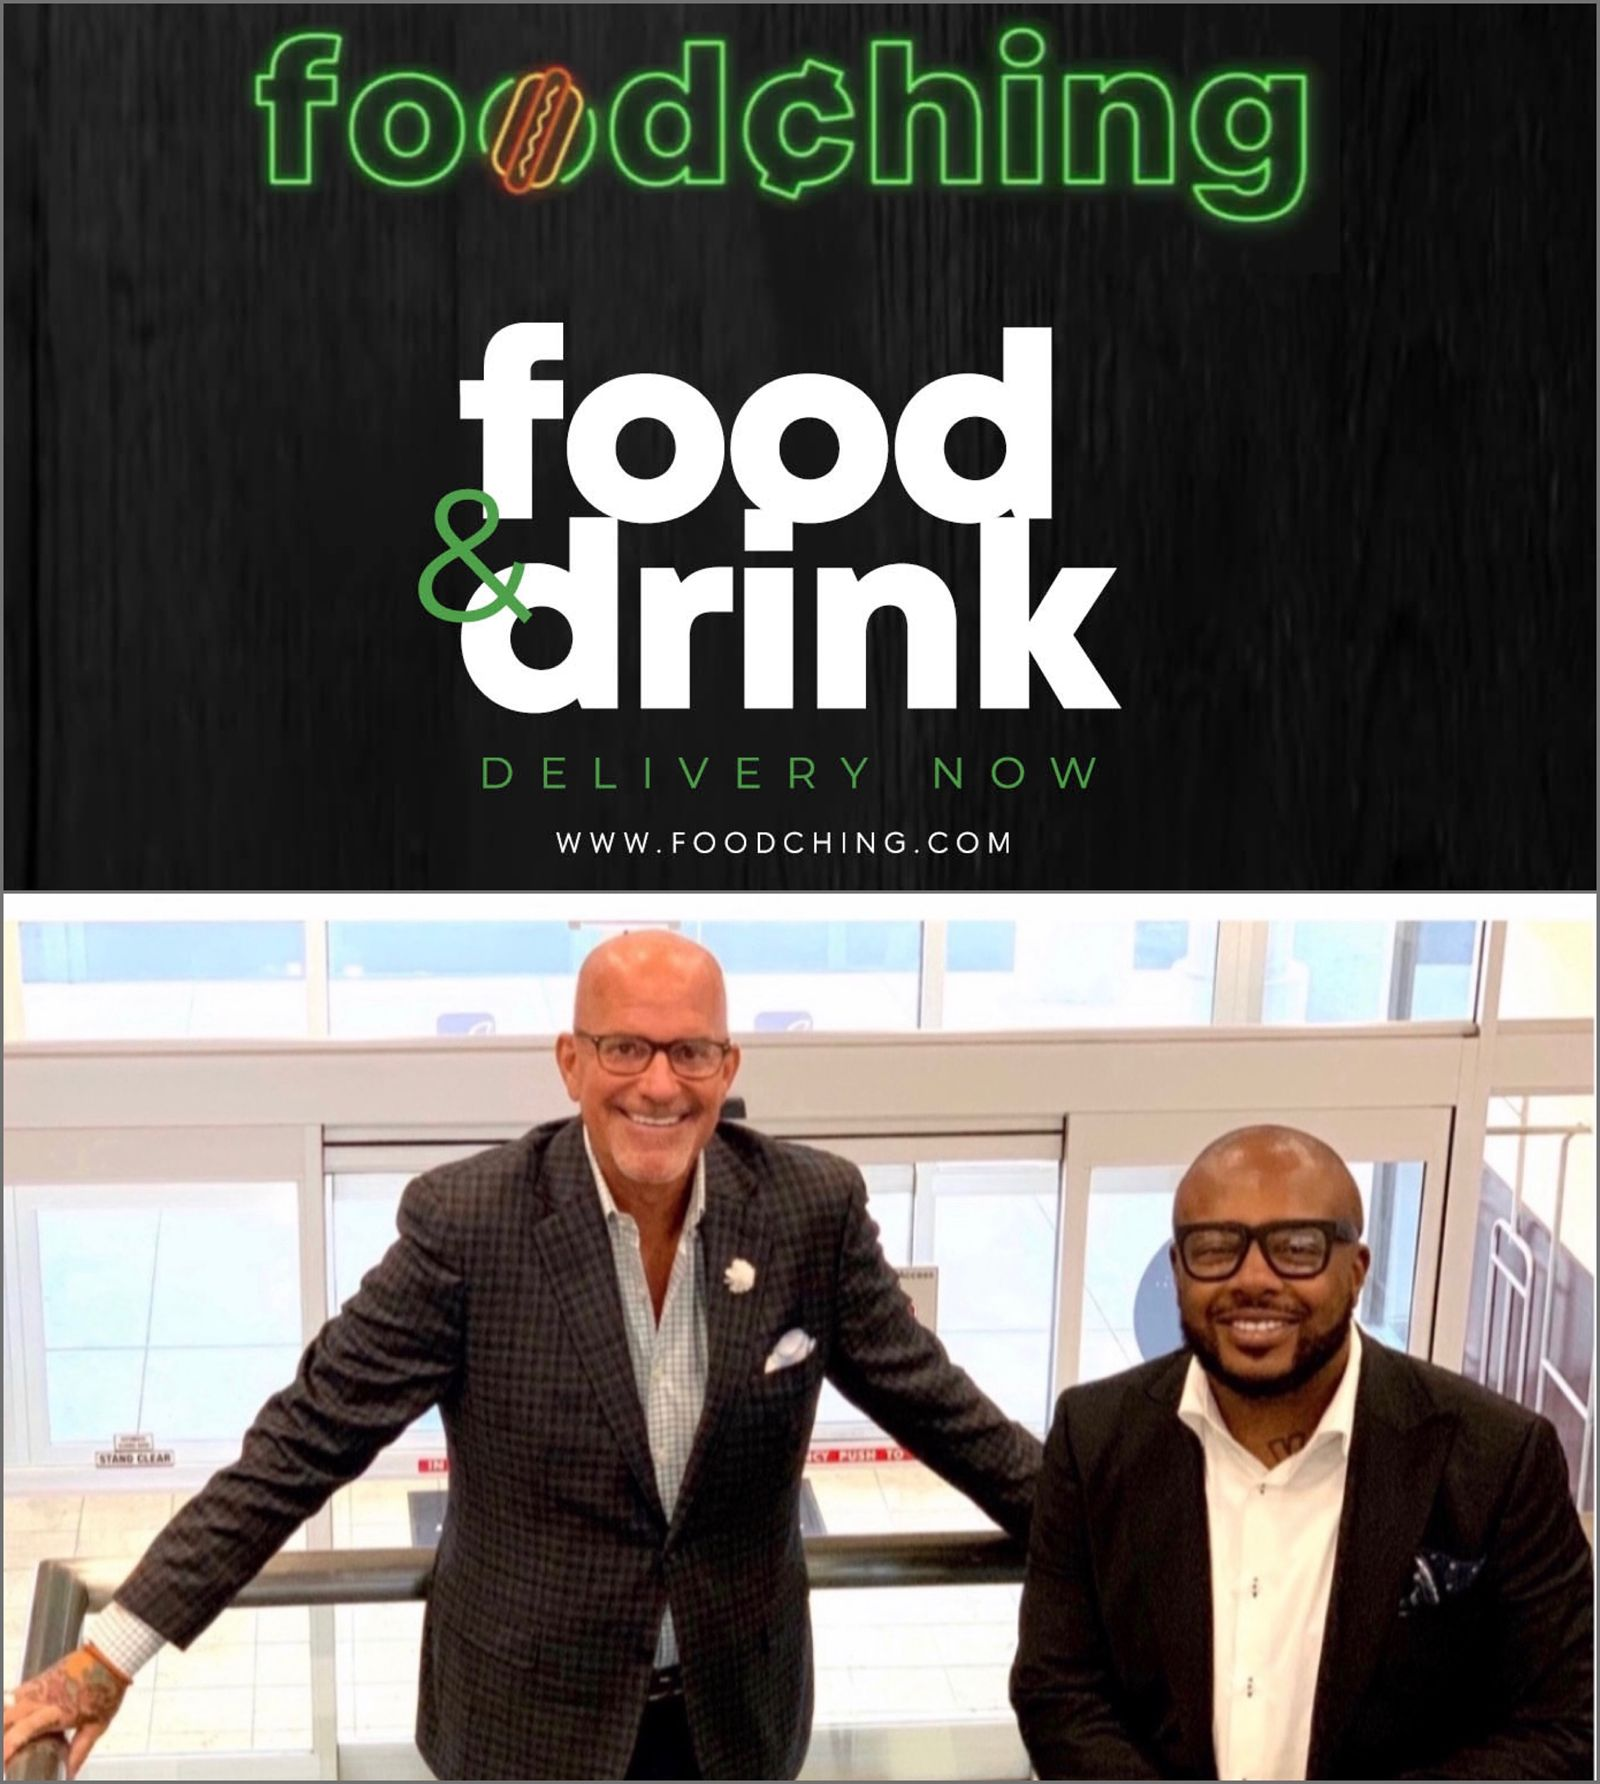 Co-Founders Greg George and Dennis McKinley Set to Launch 35 FoodChing Markets in January